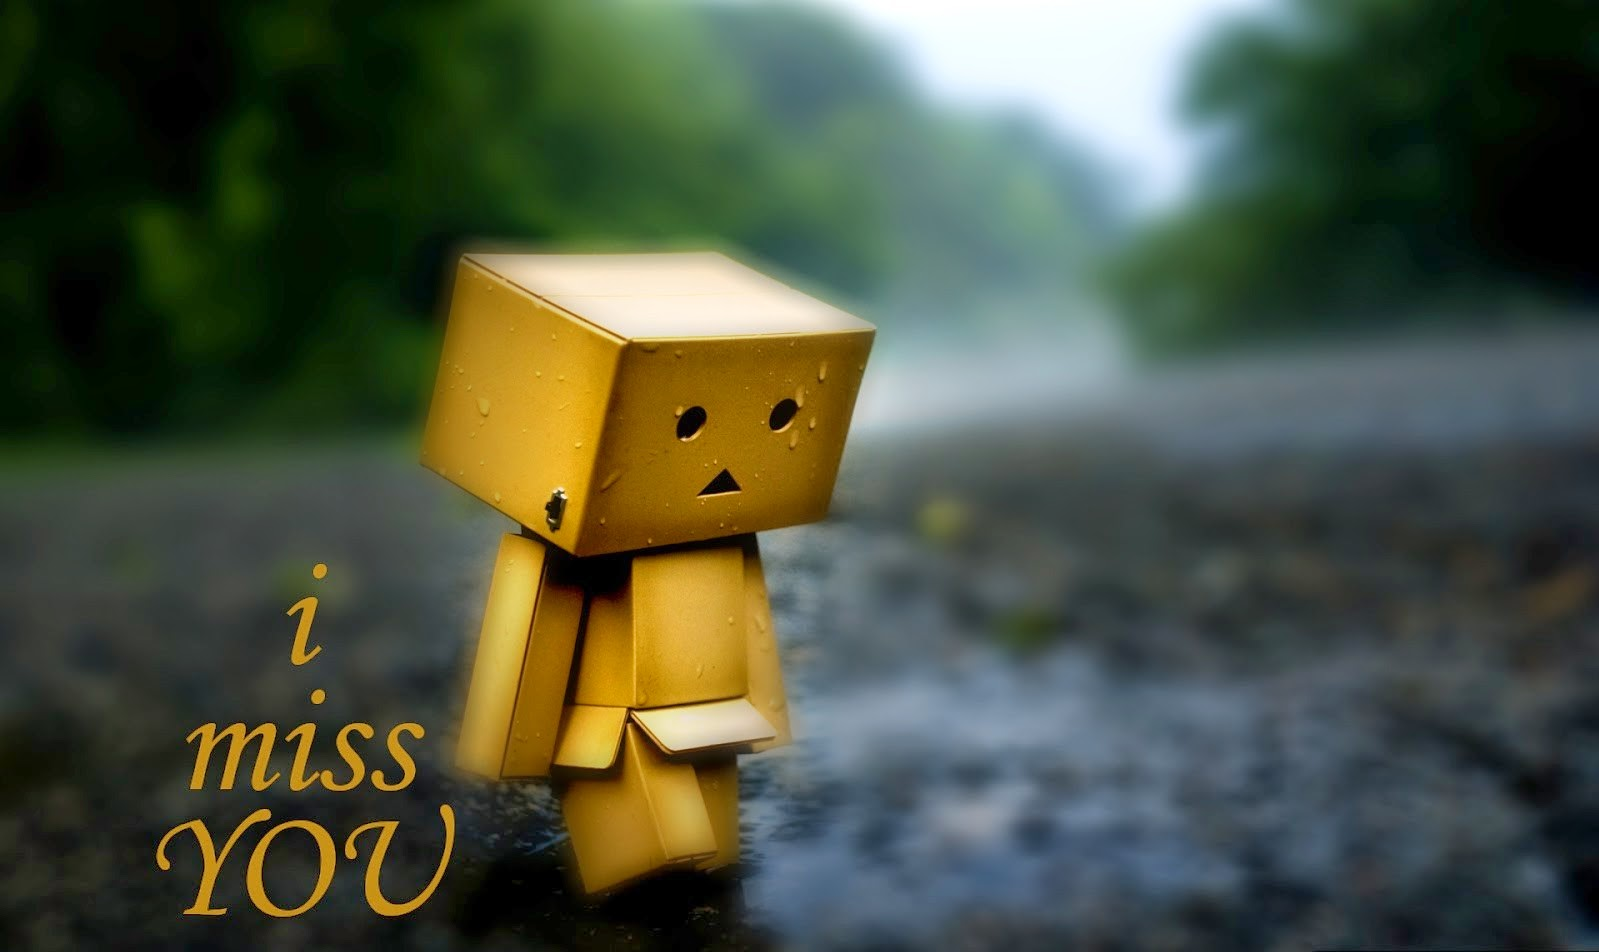 i miss you hd wallpapers download free high definition